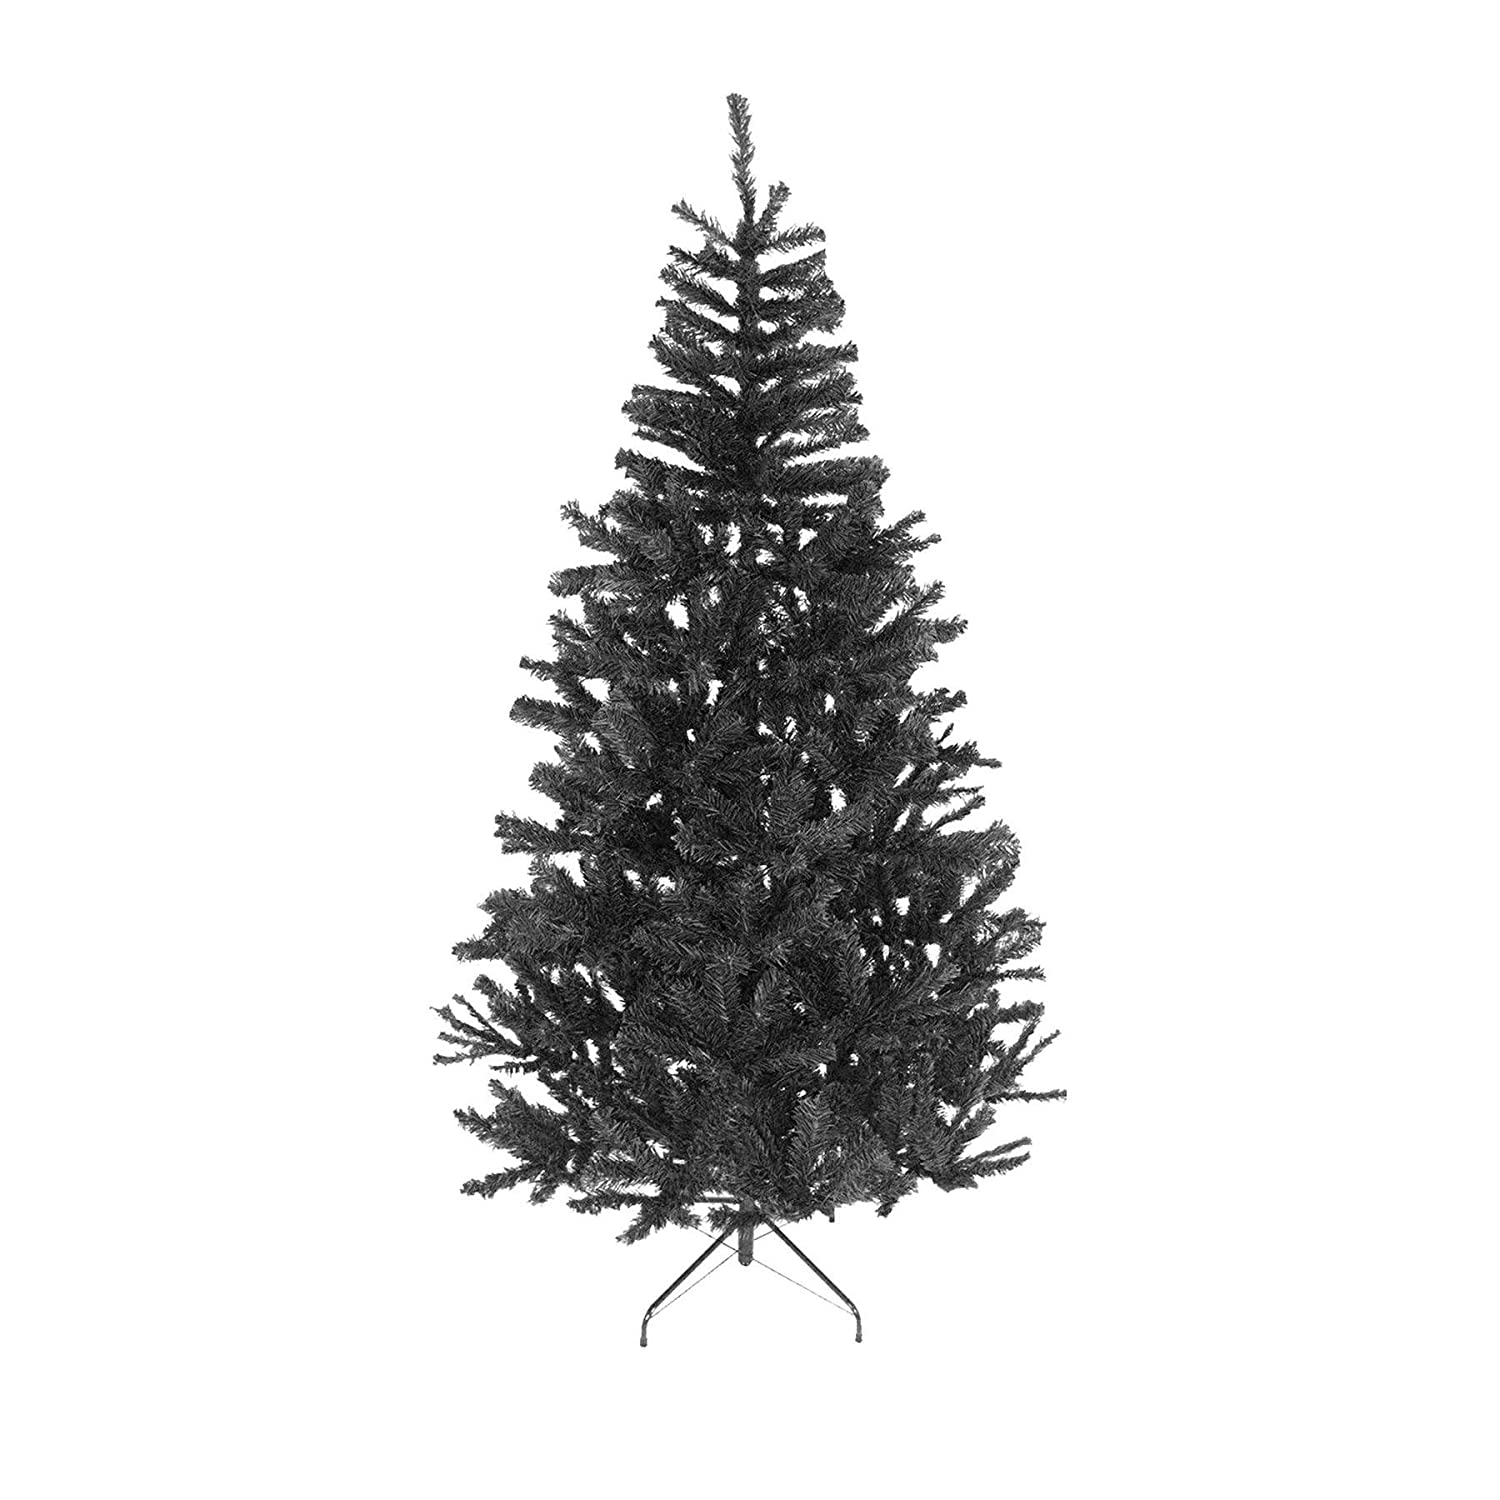 Amazon.com: 7ft - Black Christmas Tree Imperial Tips Artificial Tree ...